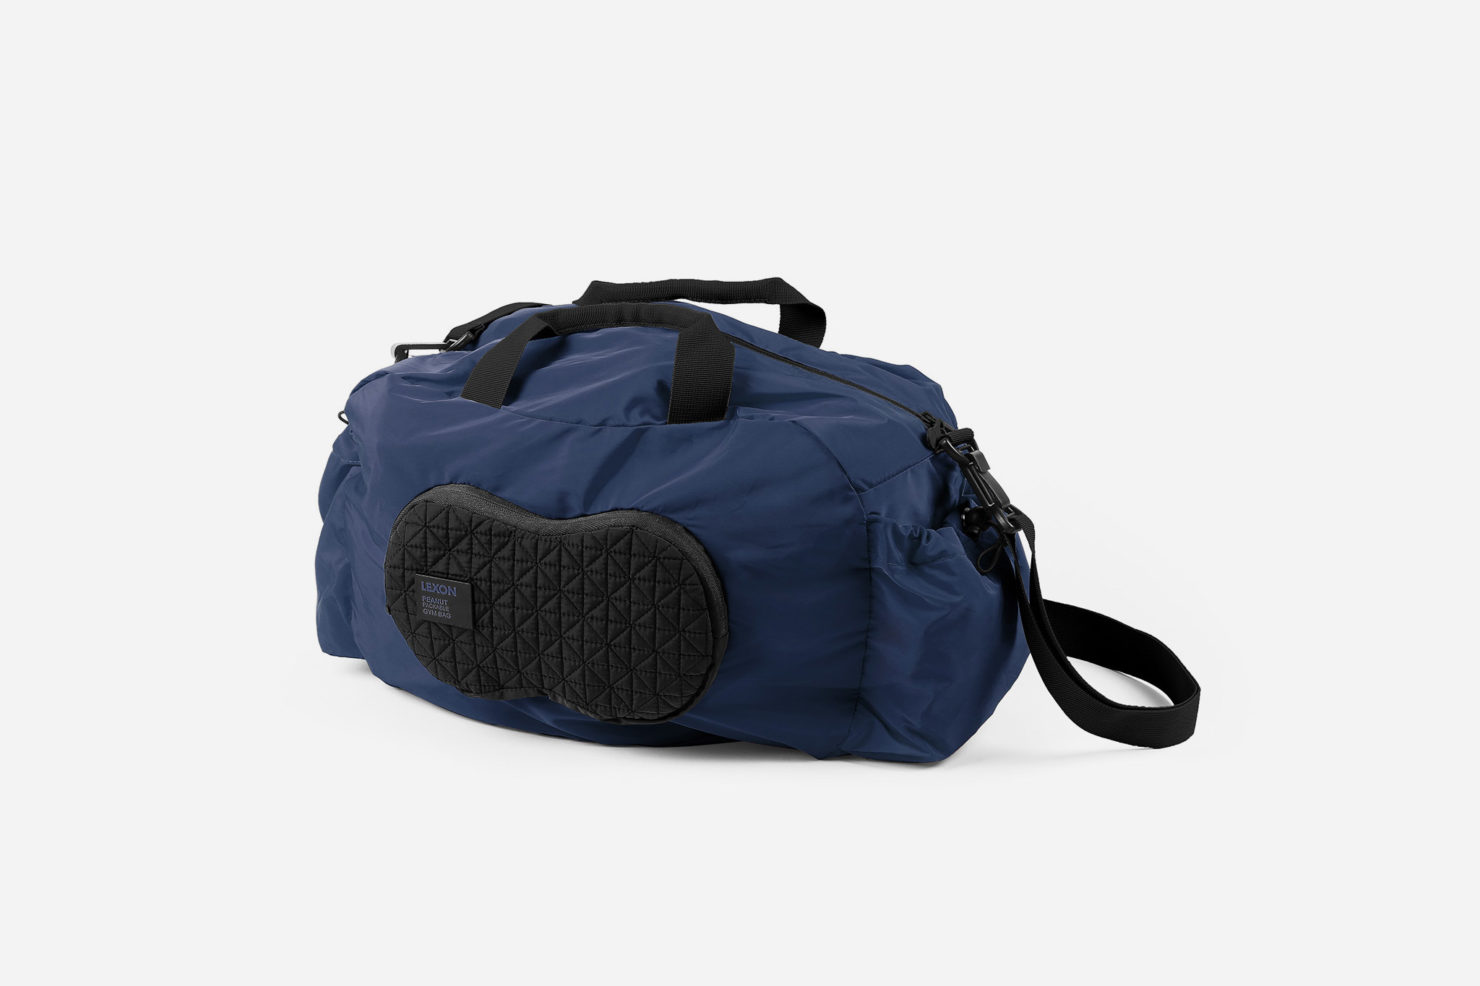 PEANUT DUFFLE NYLON BAG FOLDABLE - LEXON